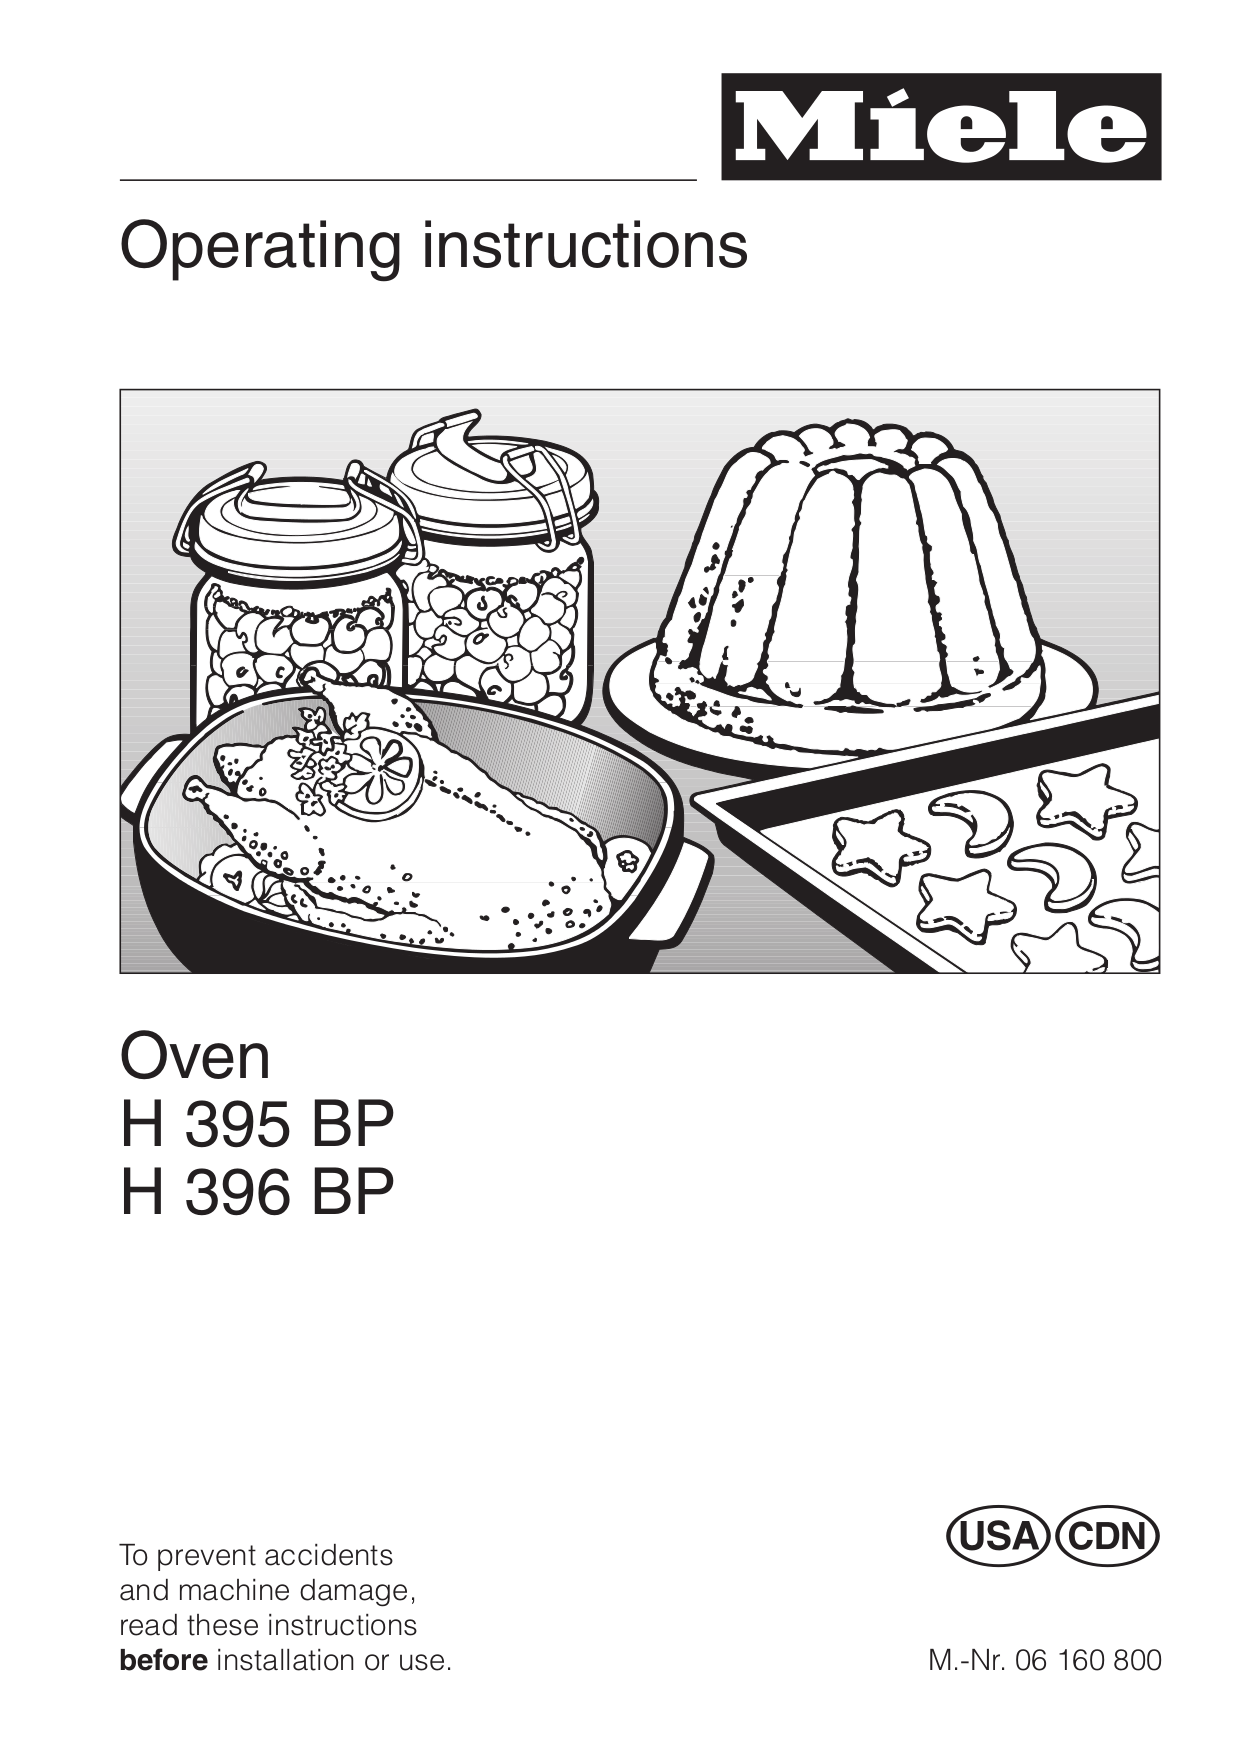 miele oven instructions use